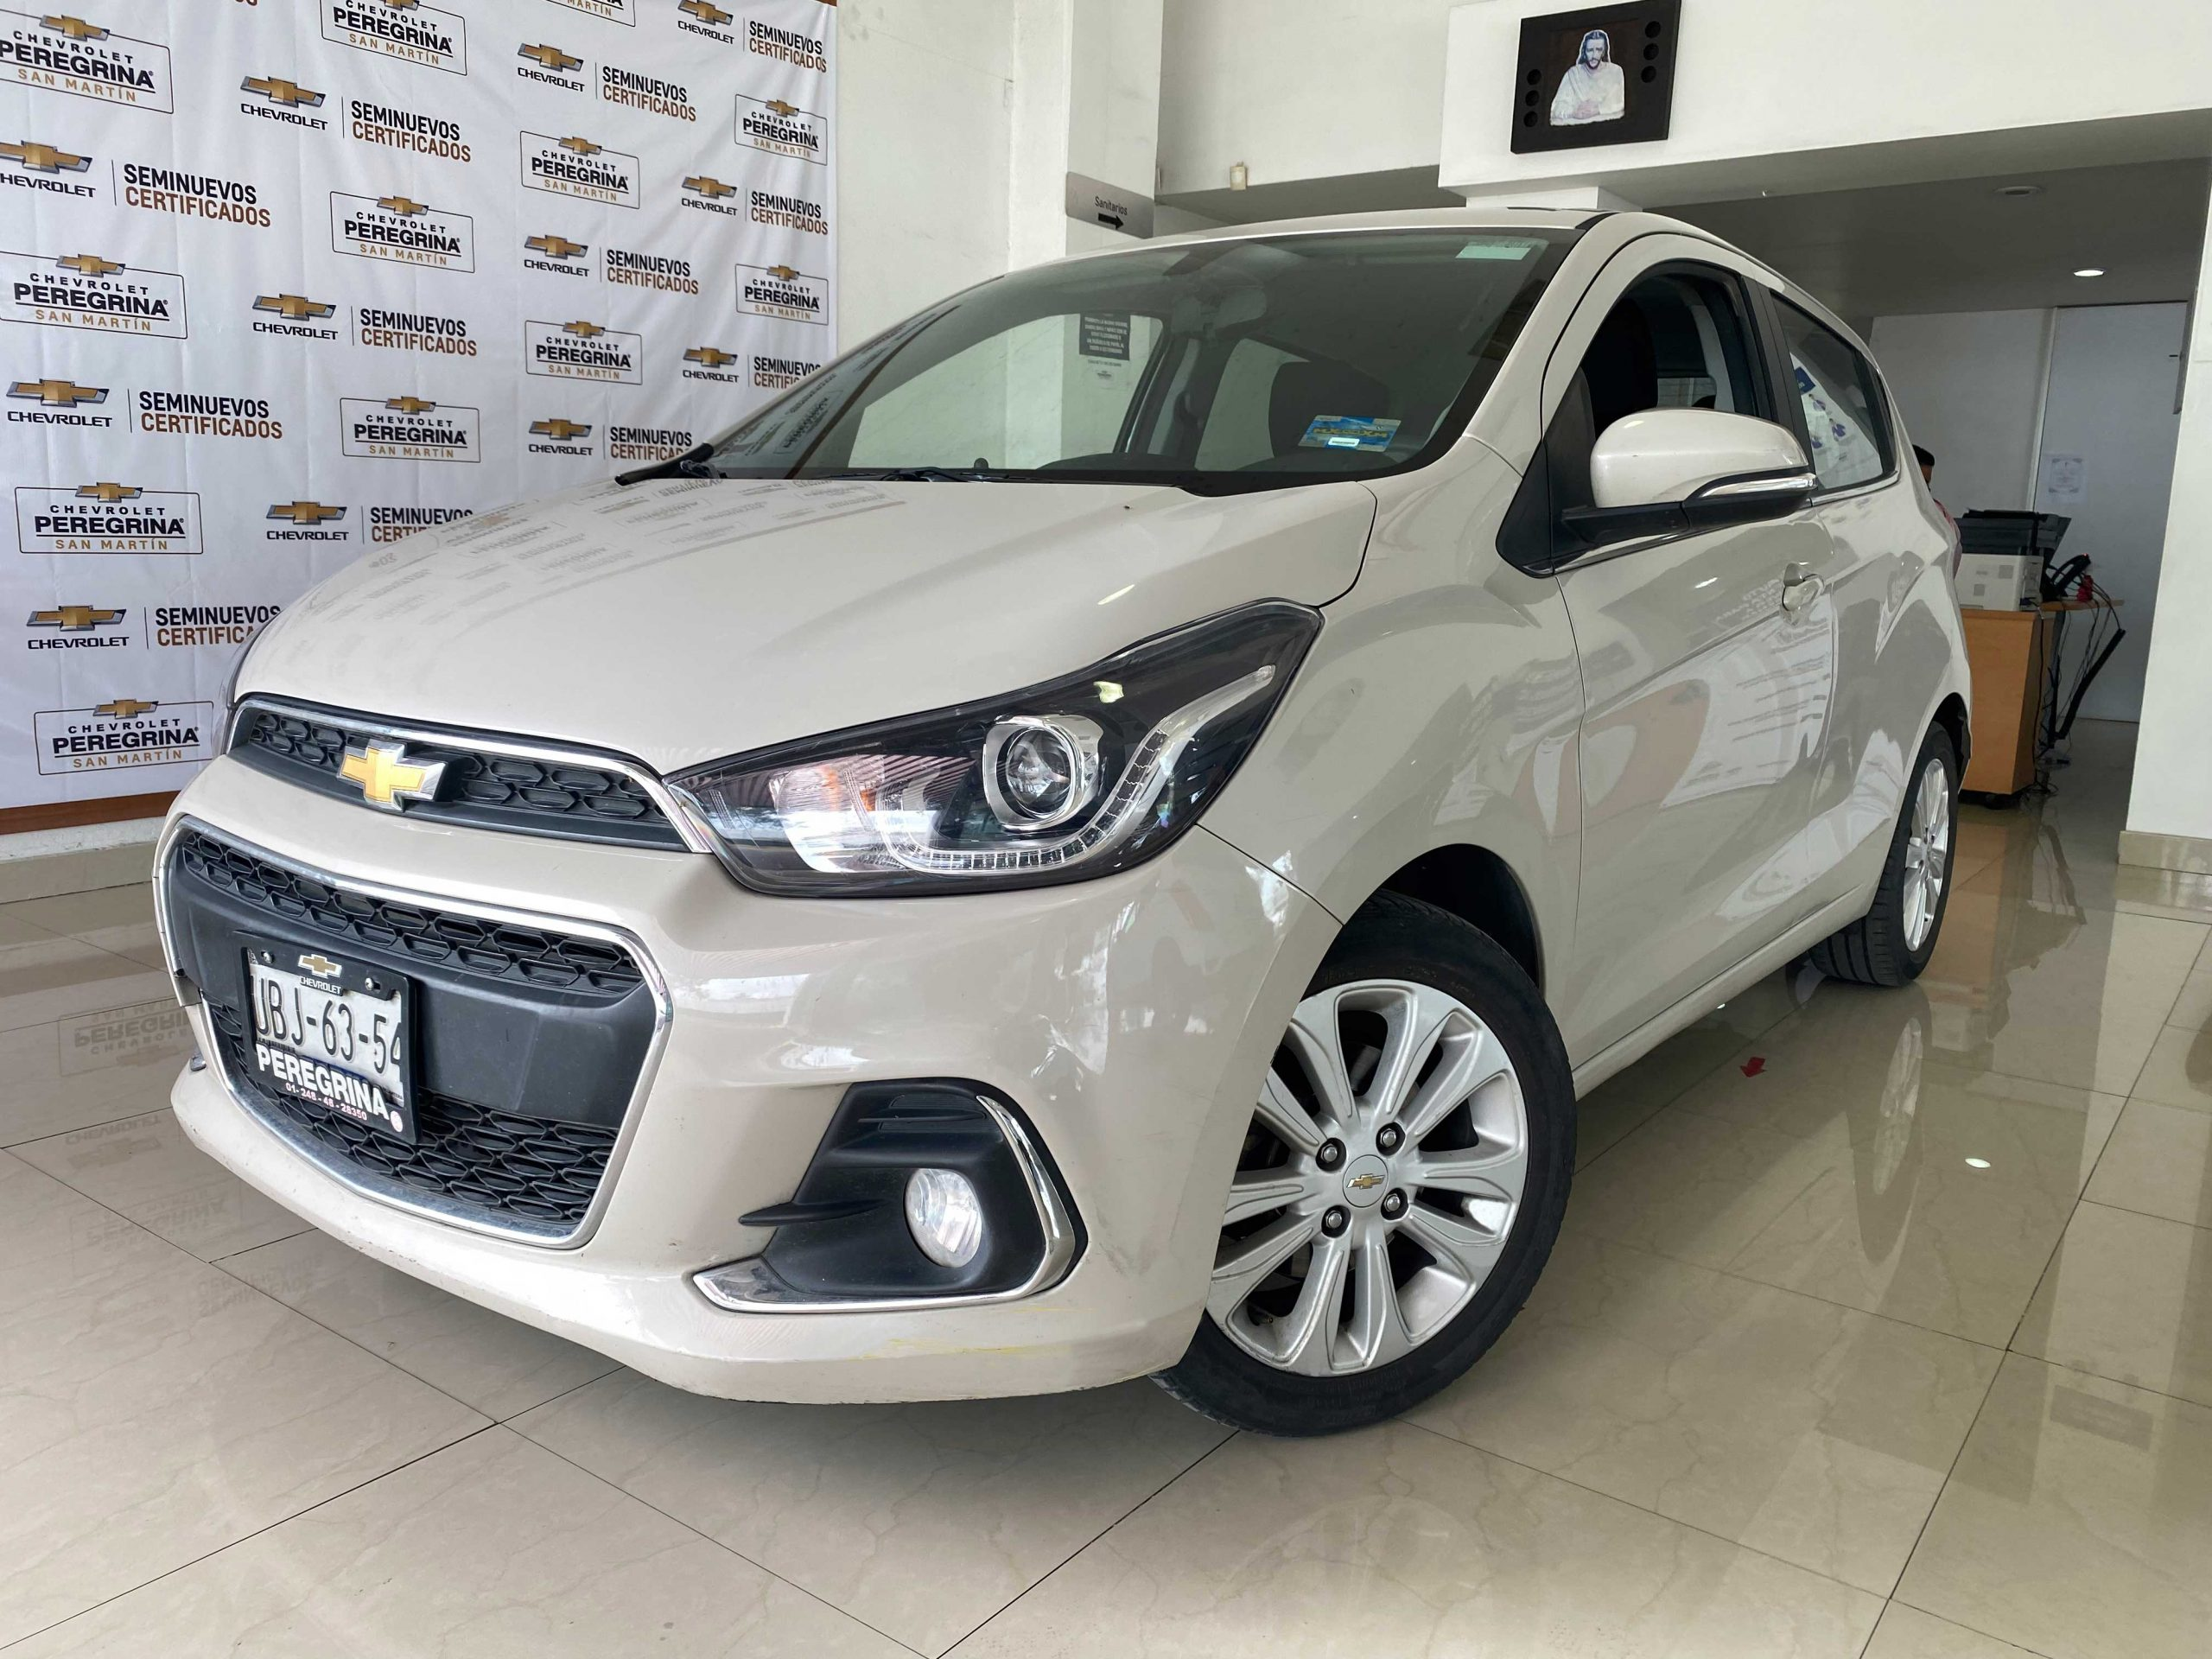 Chevrolet Spark NG Pac G Color Beige Pearl 2018 At